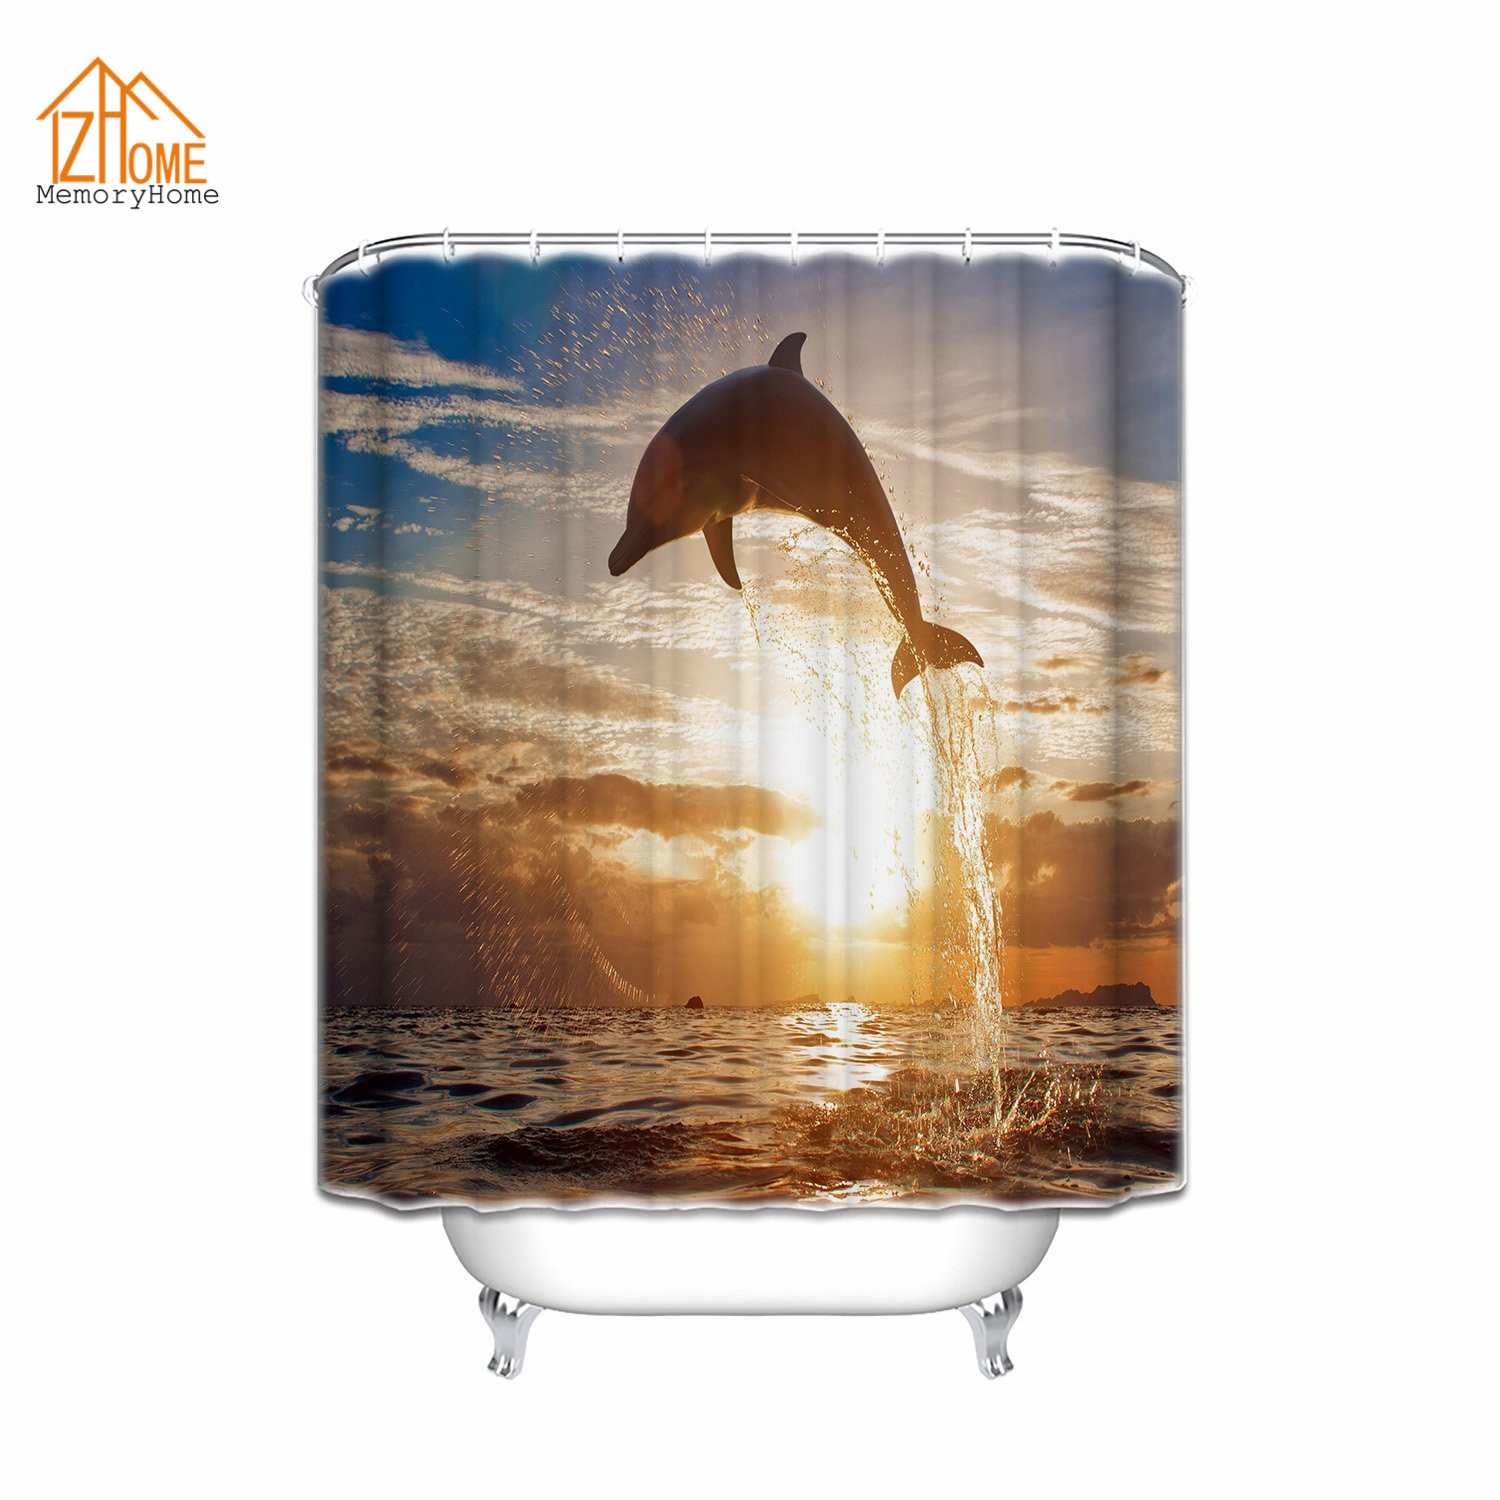 Waterproof bathroom curtains - Memory Home Custom Dolphin Fish Ocean Colletion Decor Pattern Shower Curtain Waterproof 100 Polyester Fabric